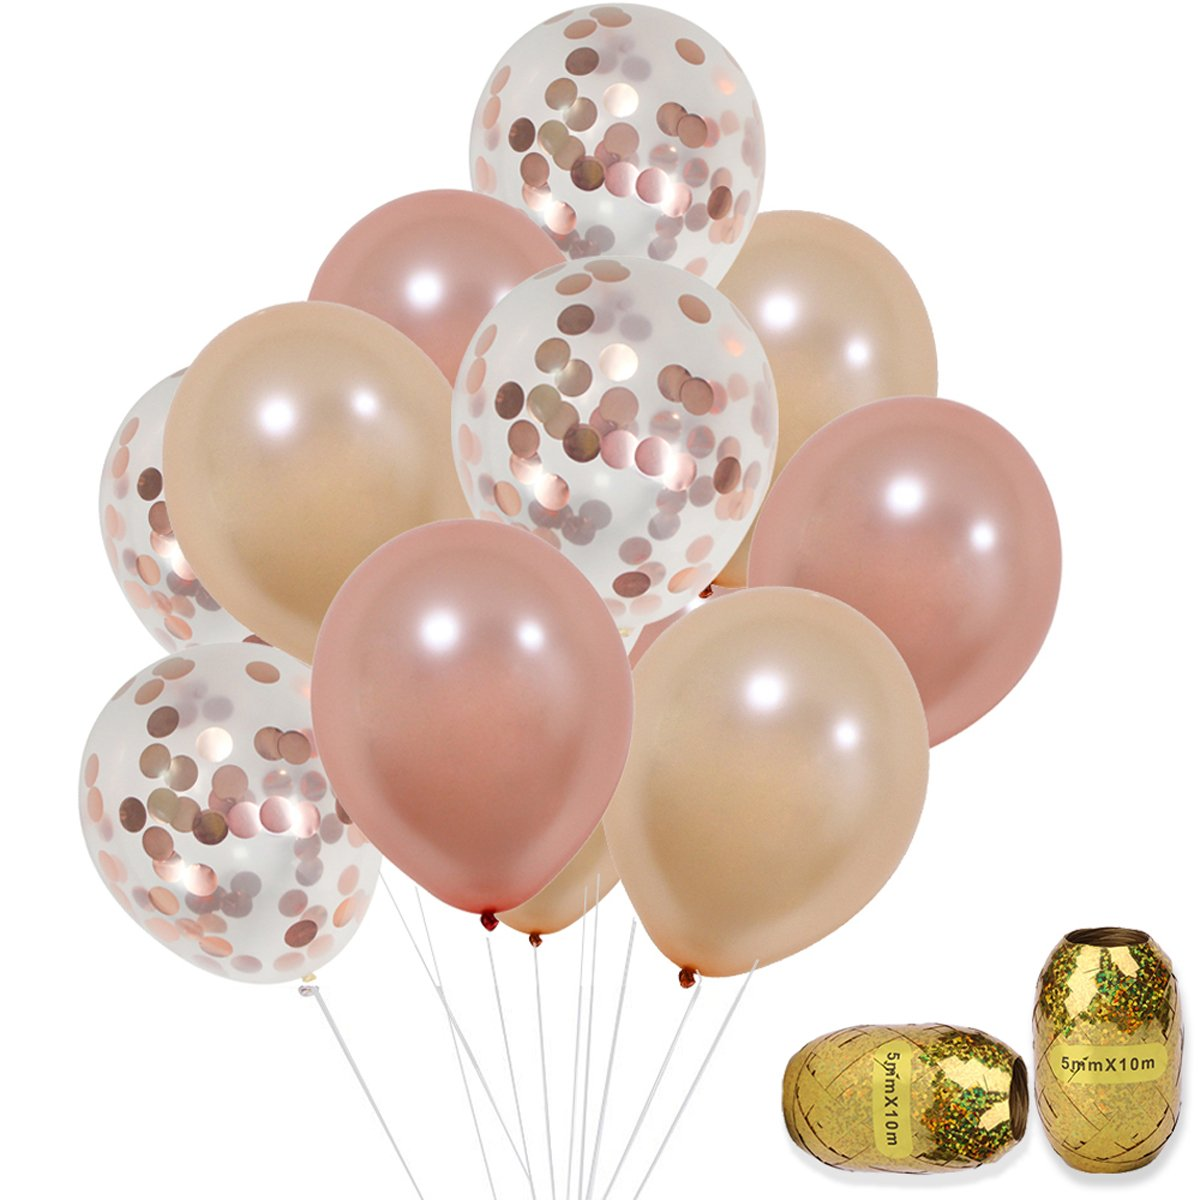 Rose Gold Confetti Balloons Set 12 inch Helium Champagne Rose Gold Latex Balloons for Birthday, Weddings, Baby Shower Party Decorations 30pcs by KUMEED